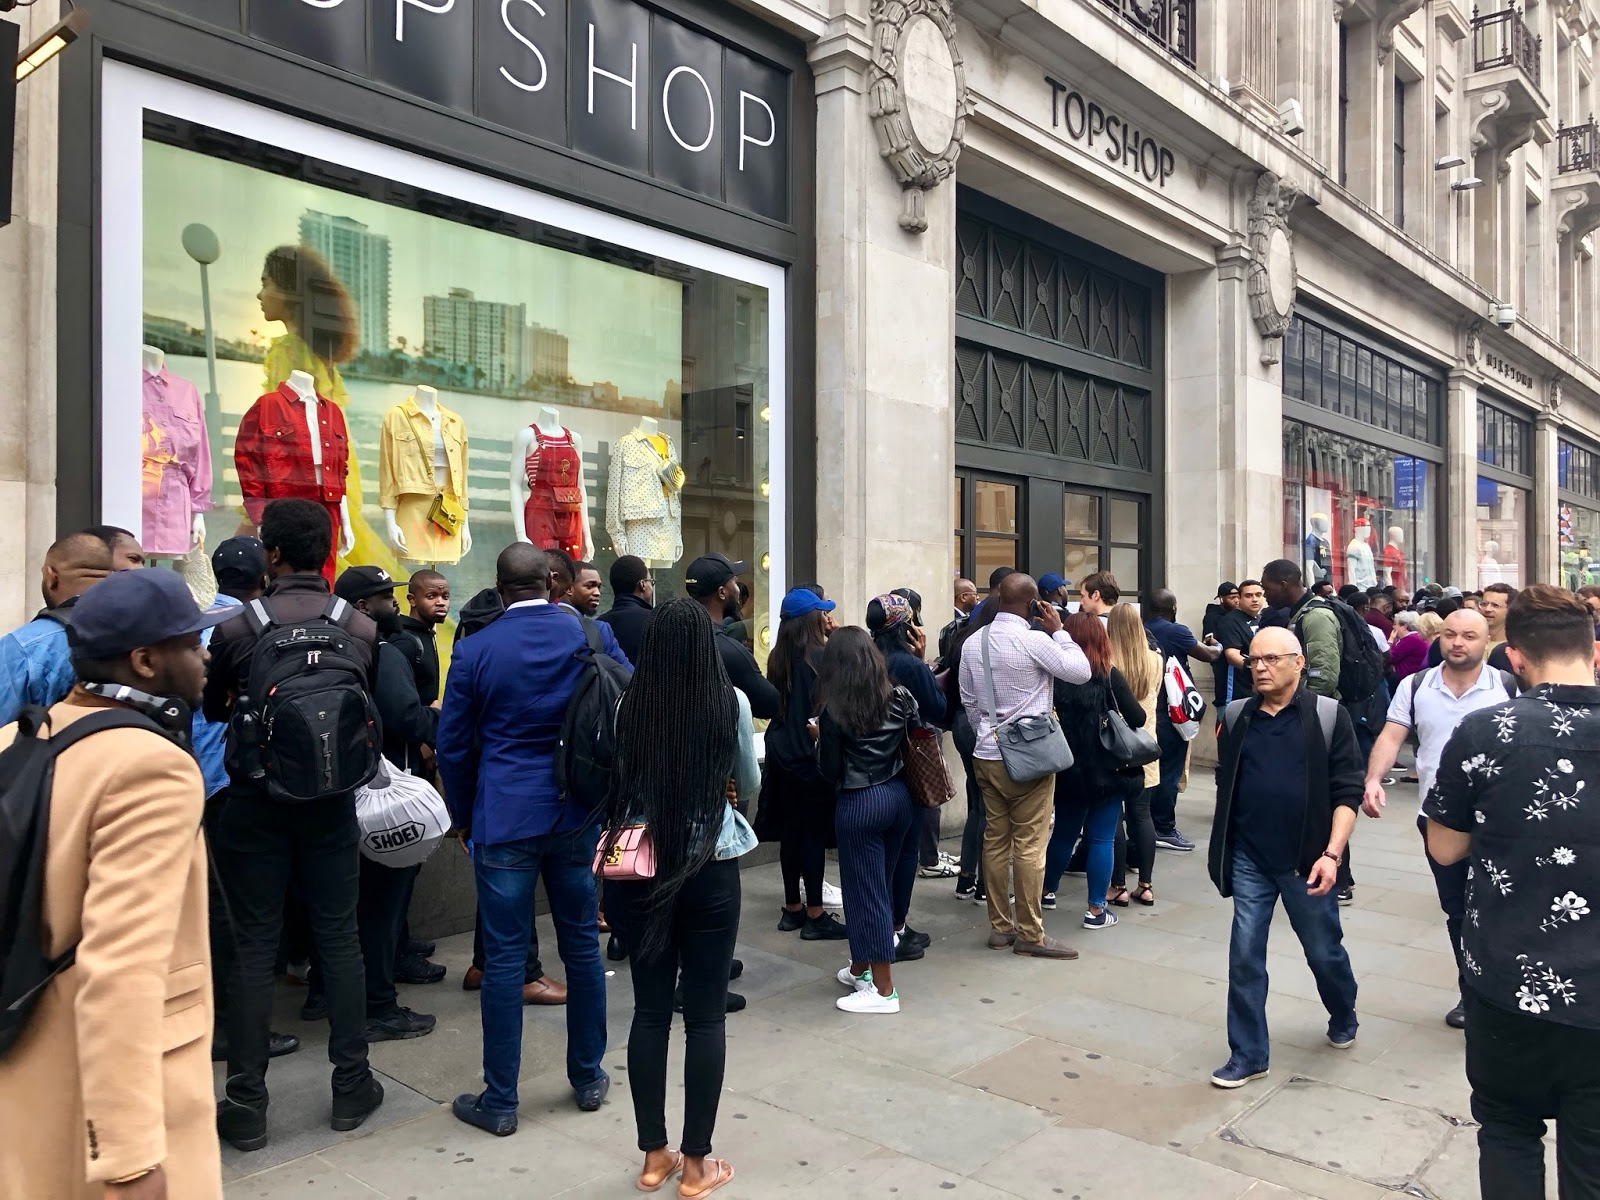 Fans queuing up to purchase Nigeria's World Cup Jersey